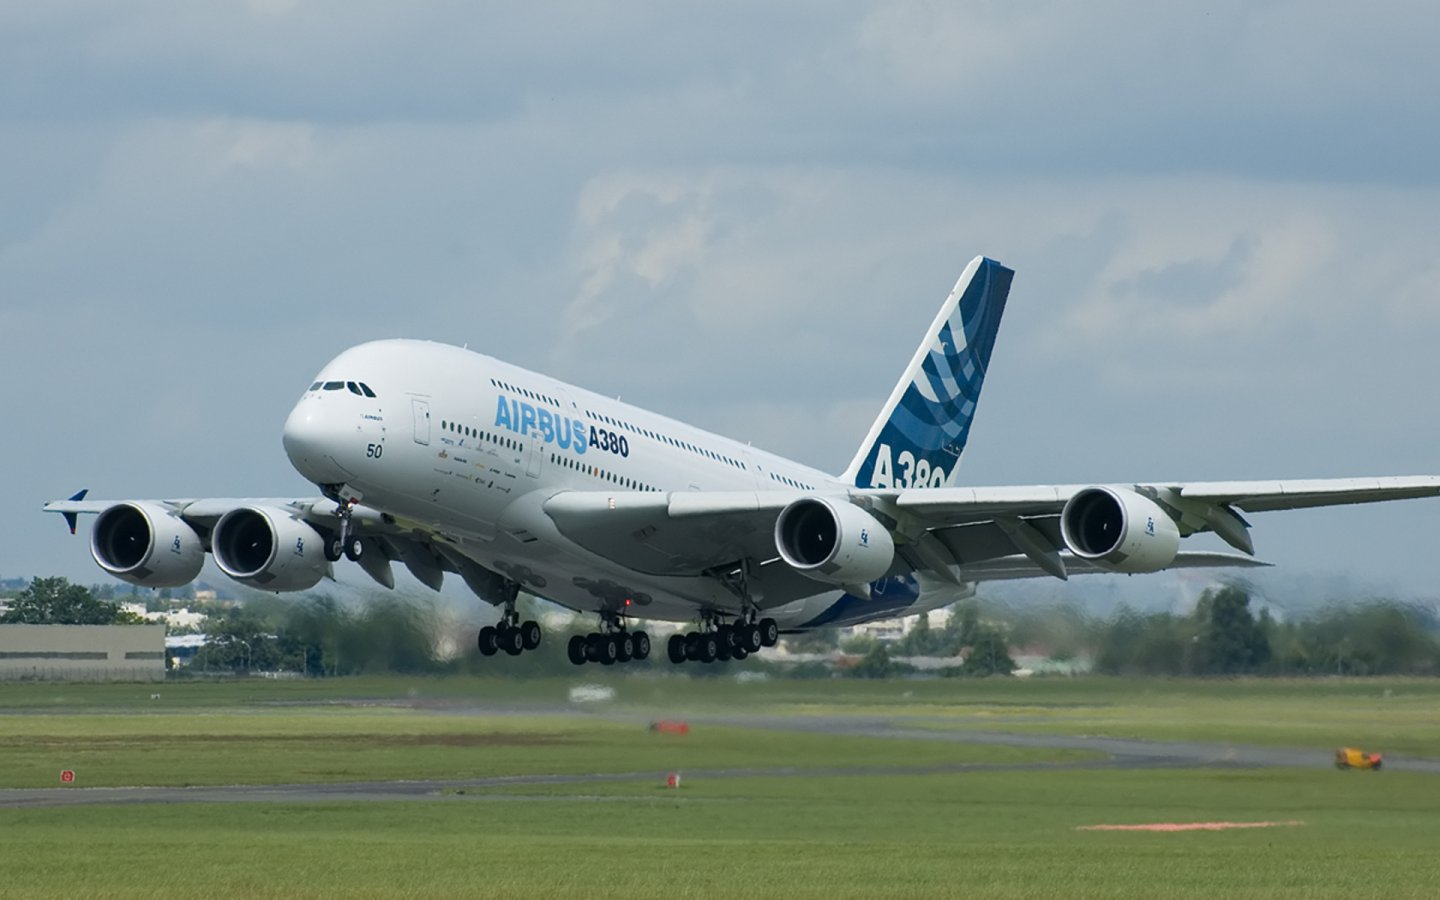 Airbus A380 800F Airplane   HD Wallpapers Widescreen   1440x900 1440x900